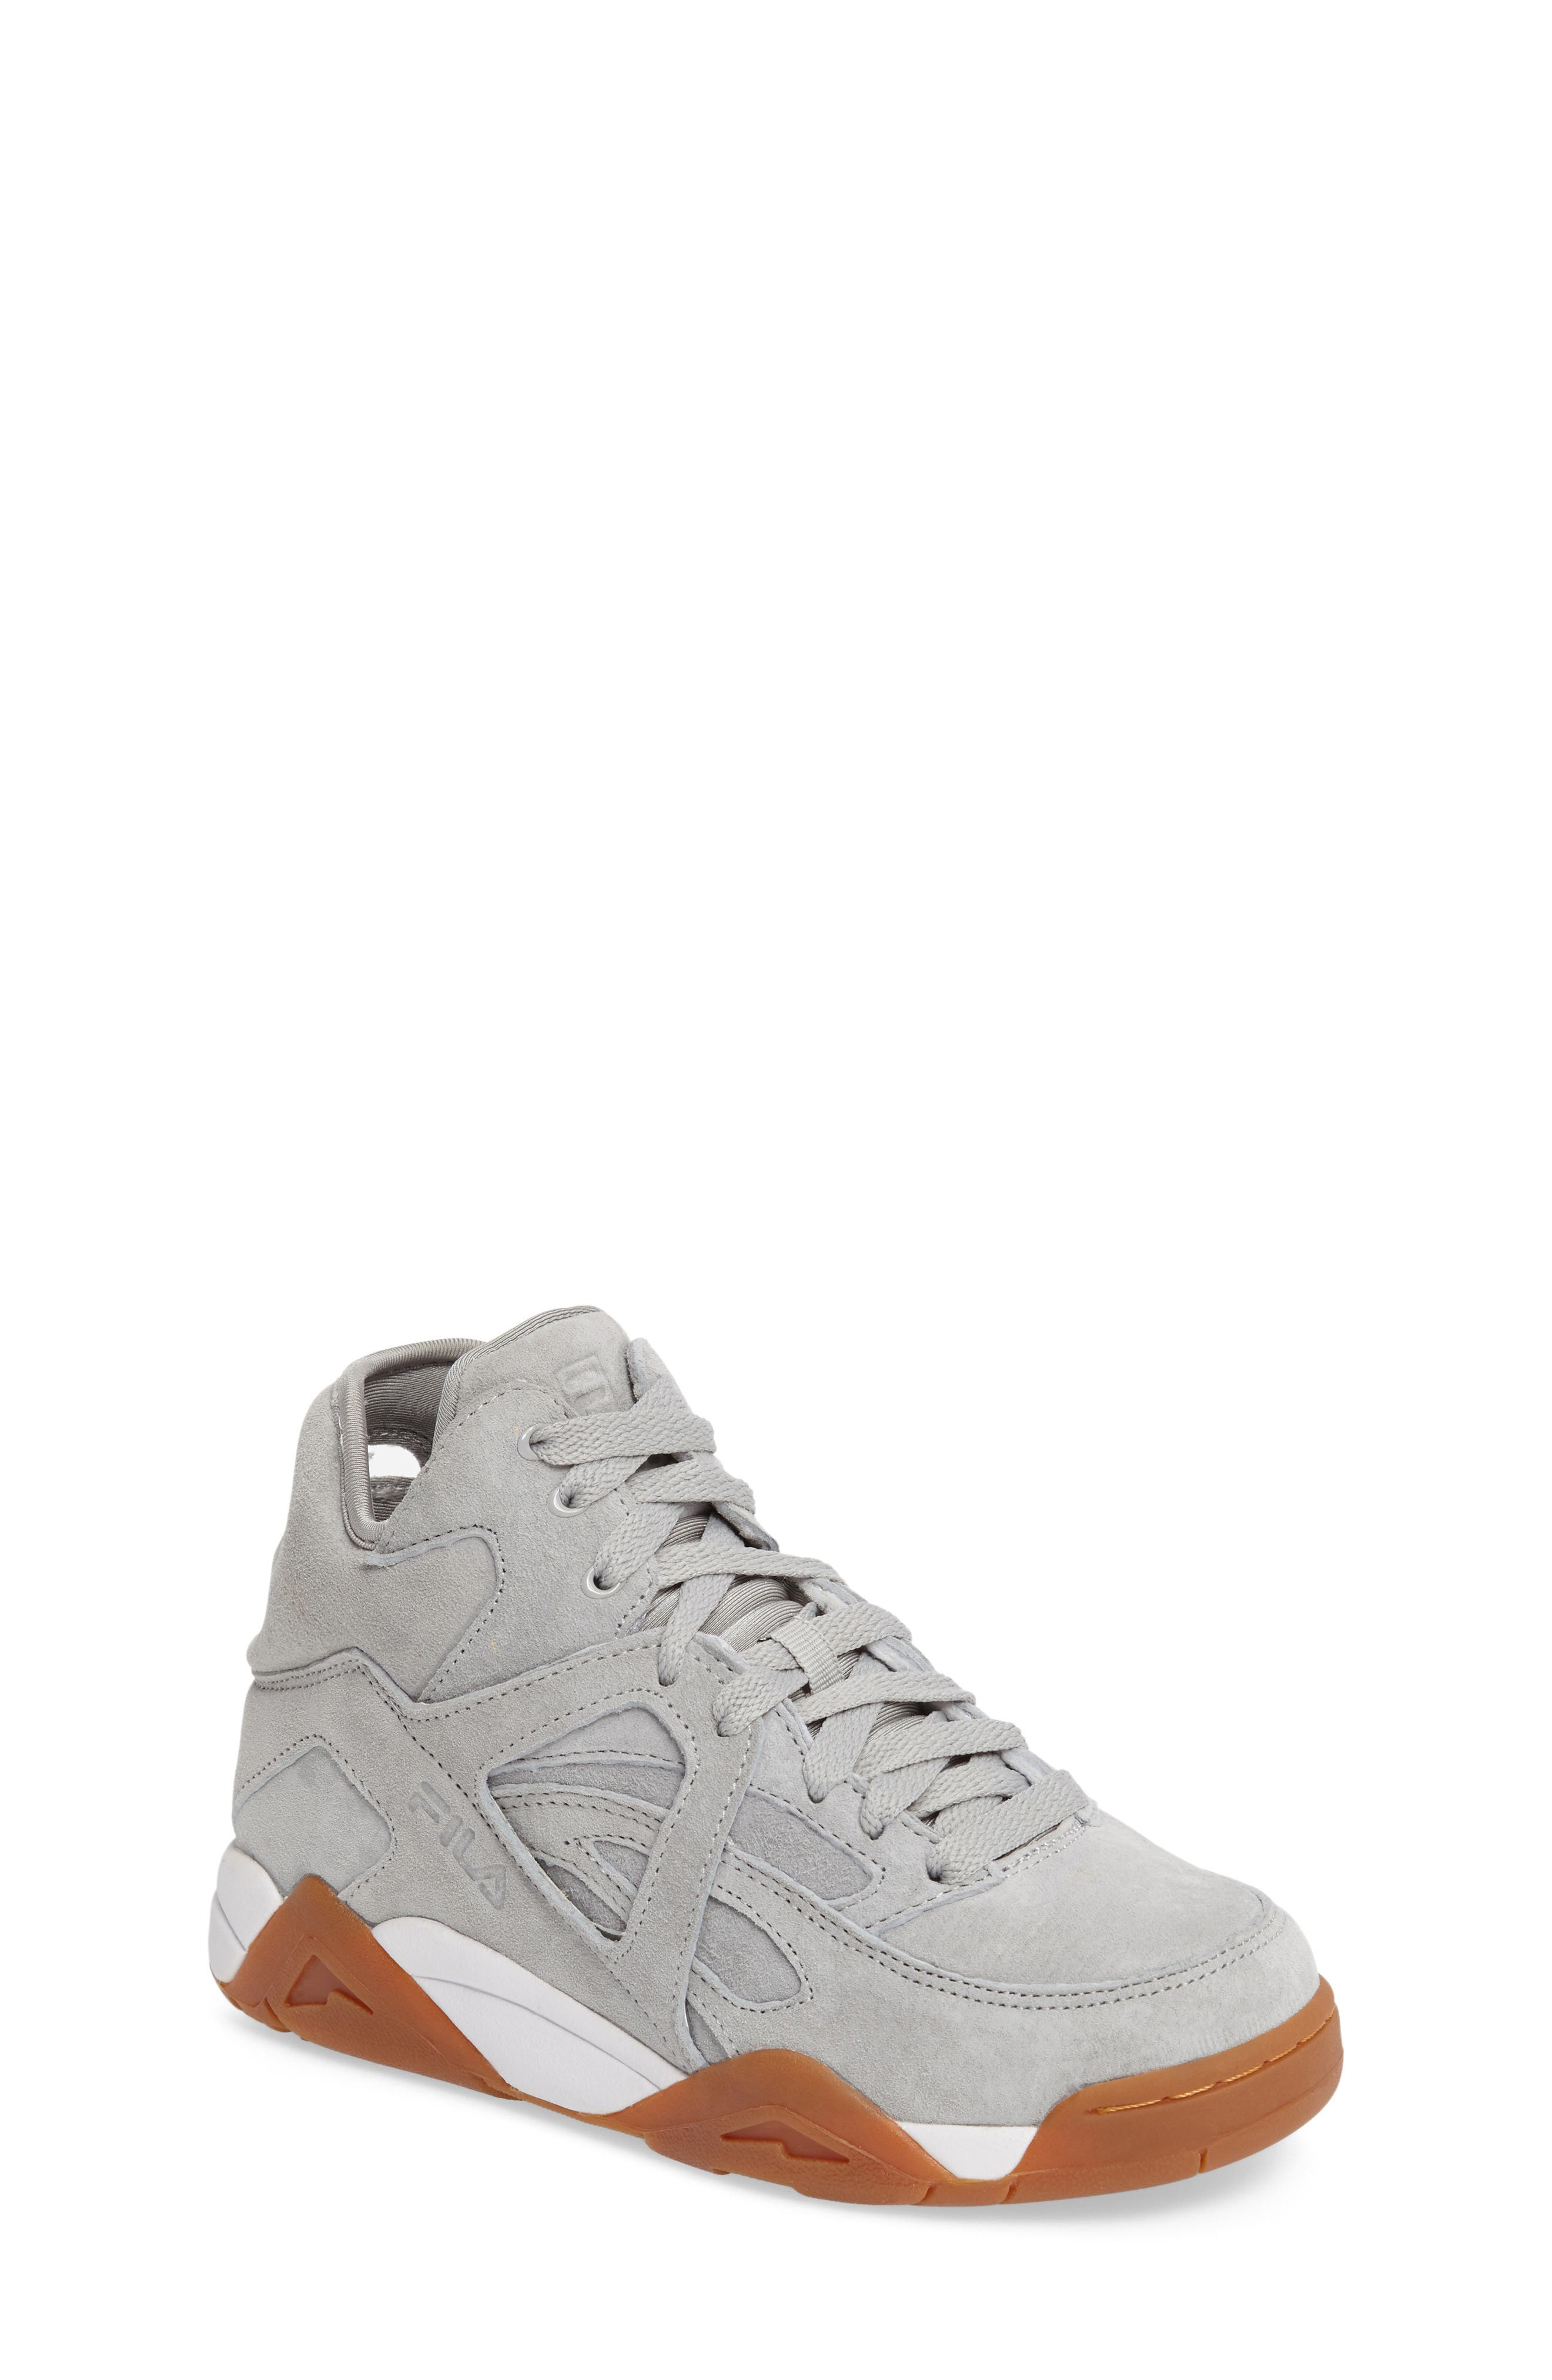 The Cage High Top Sneaker,                             Main thumbnail 1, color,                             072